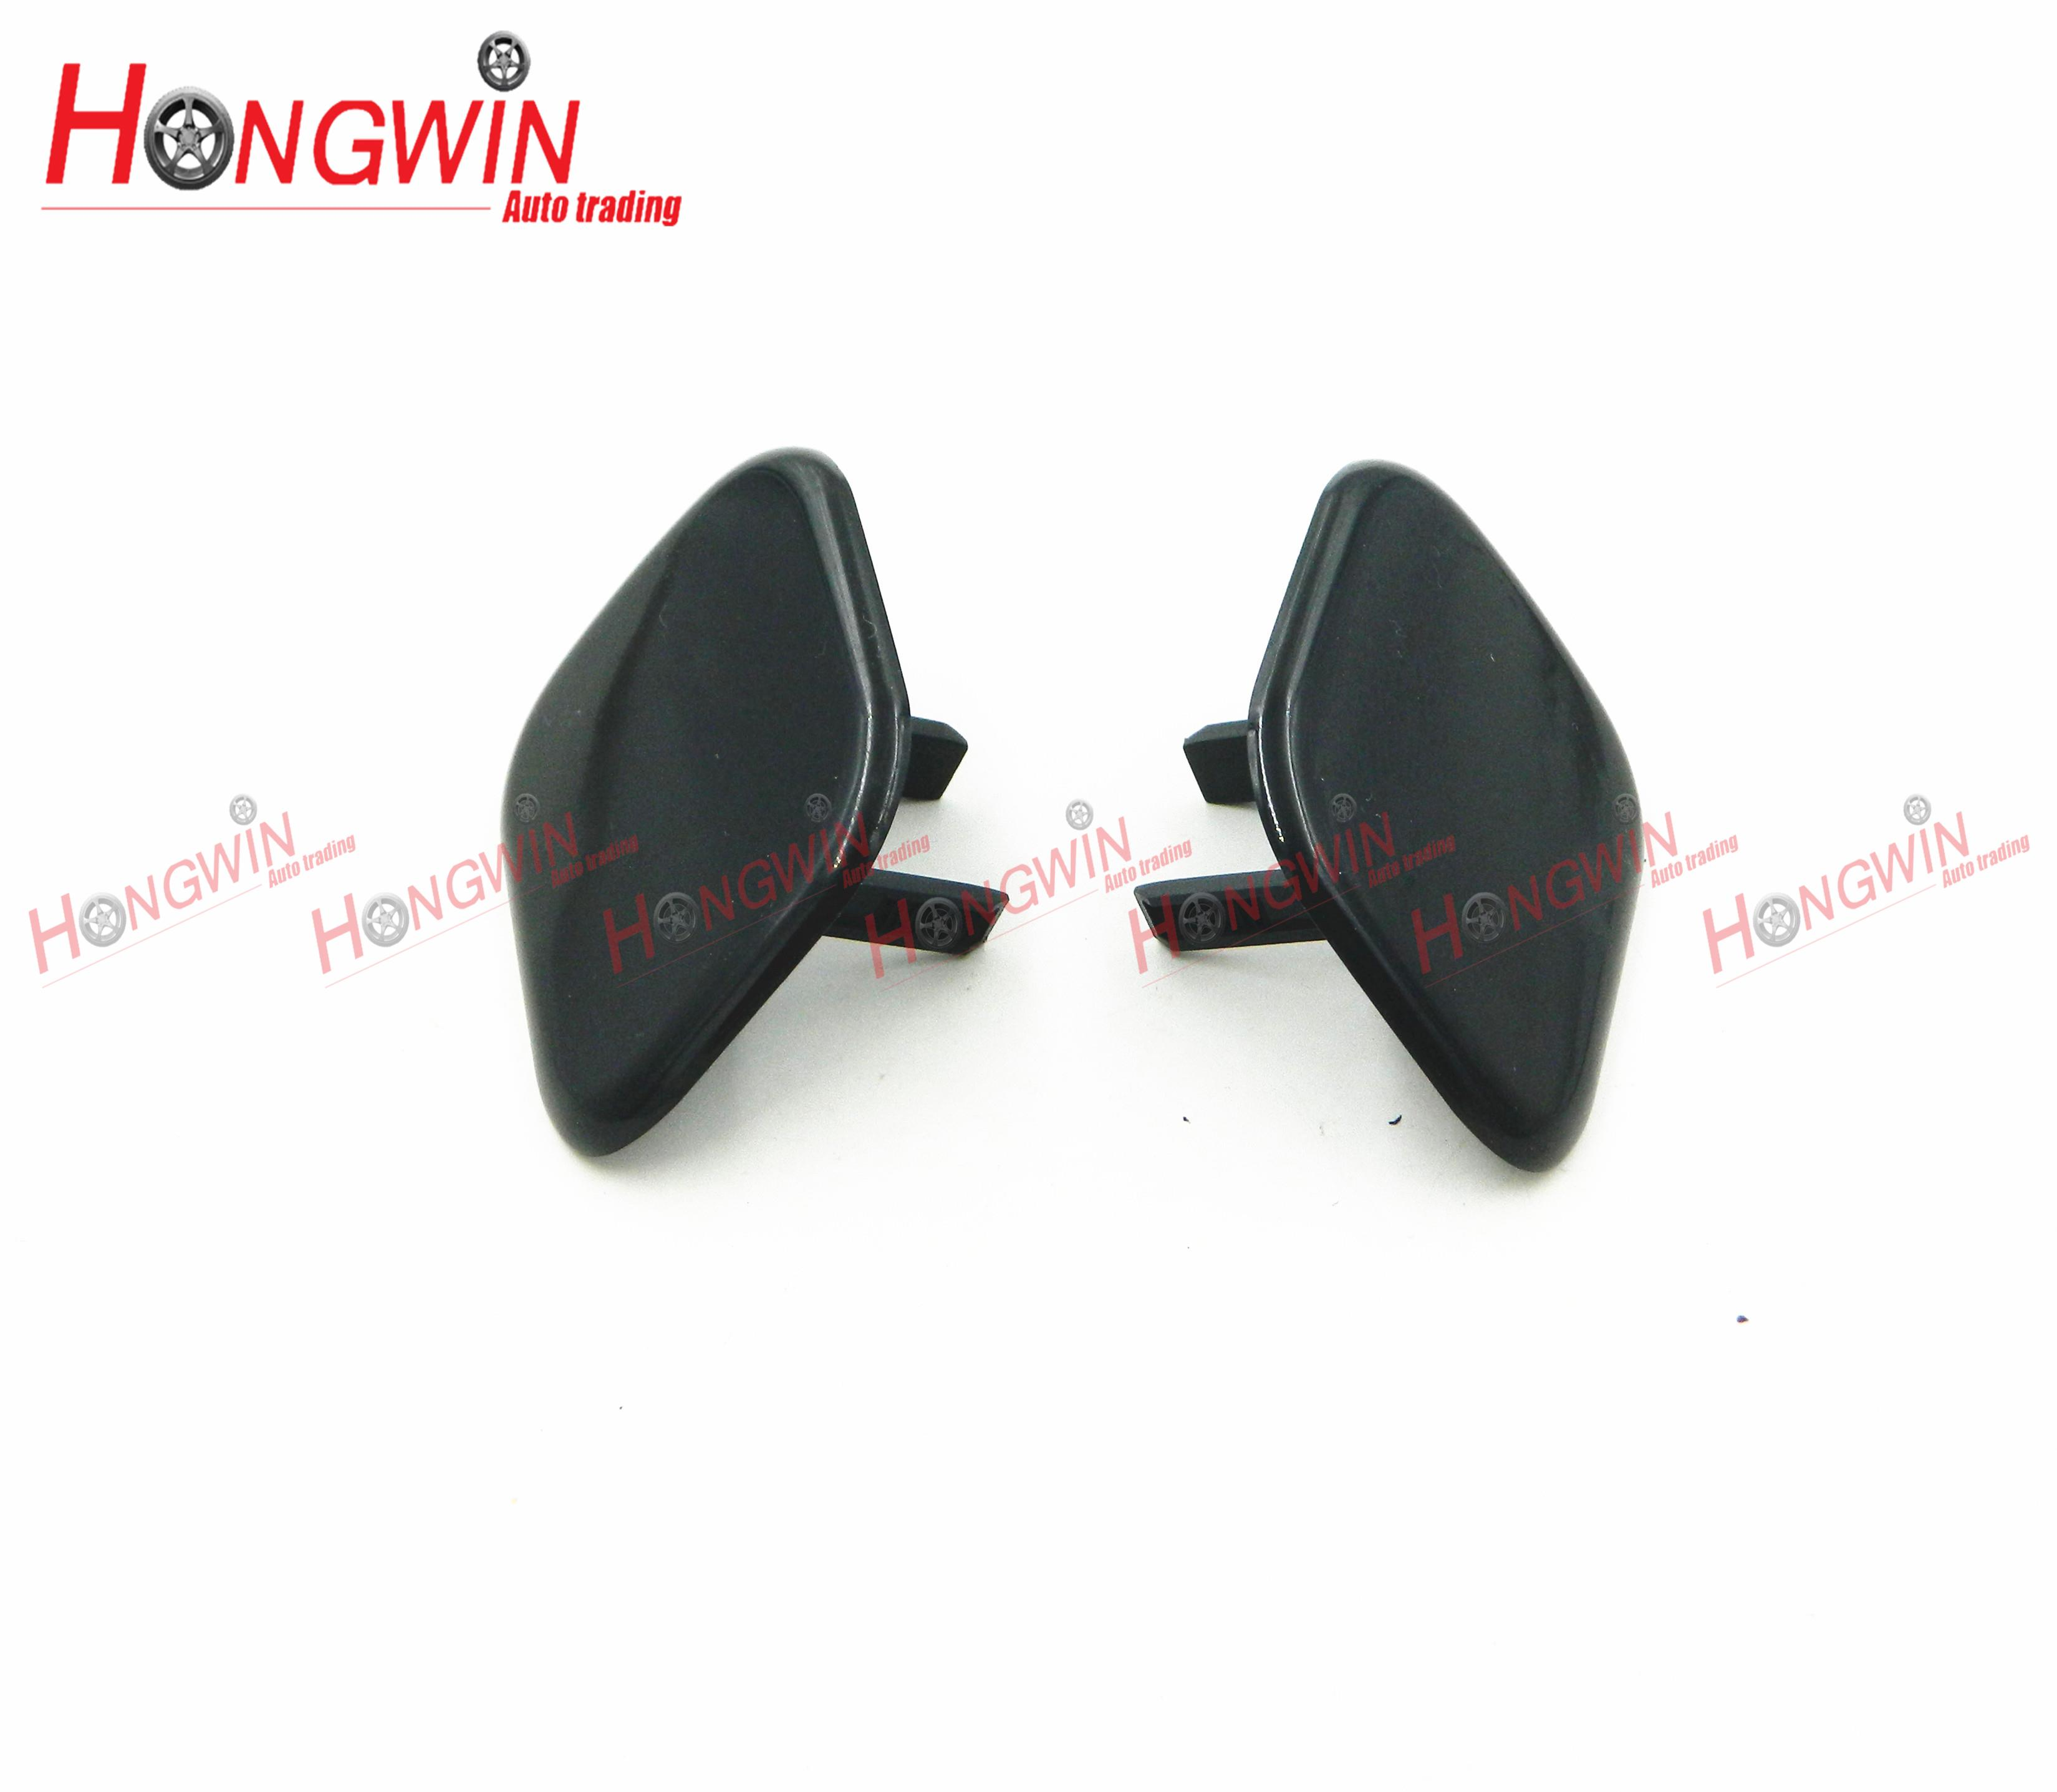 For Nissan Qashqai Side Mirror Cover Cup 2010-2013 Right Unpainted